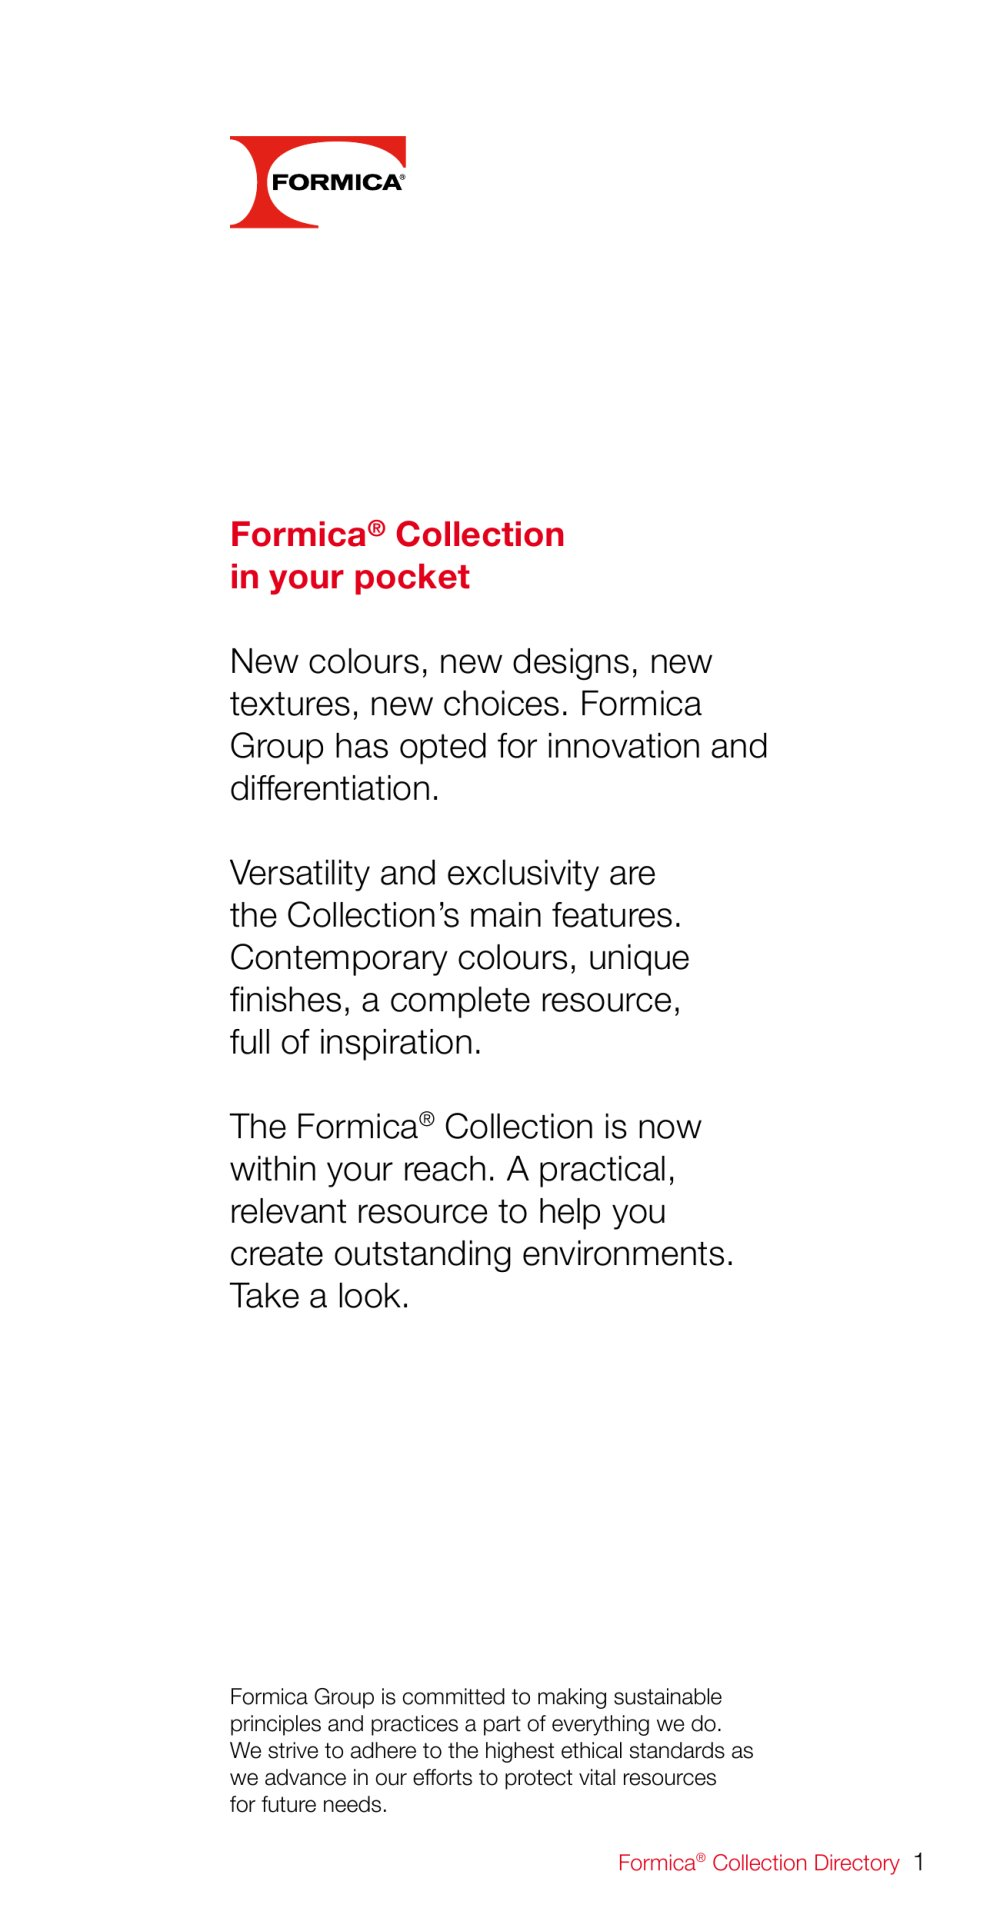 Formica collection directory